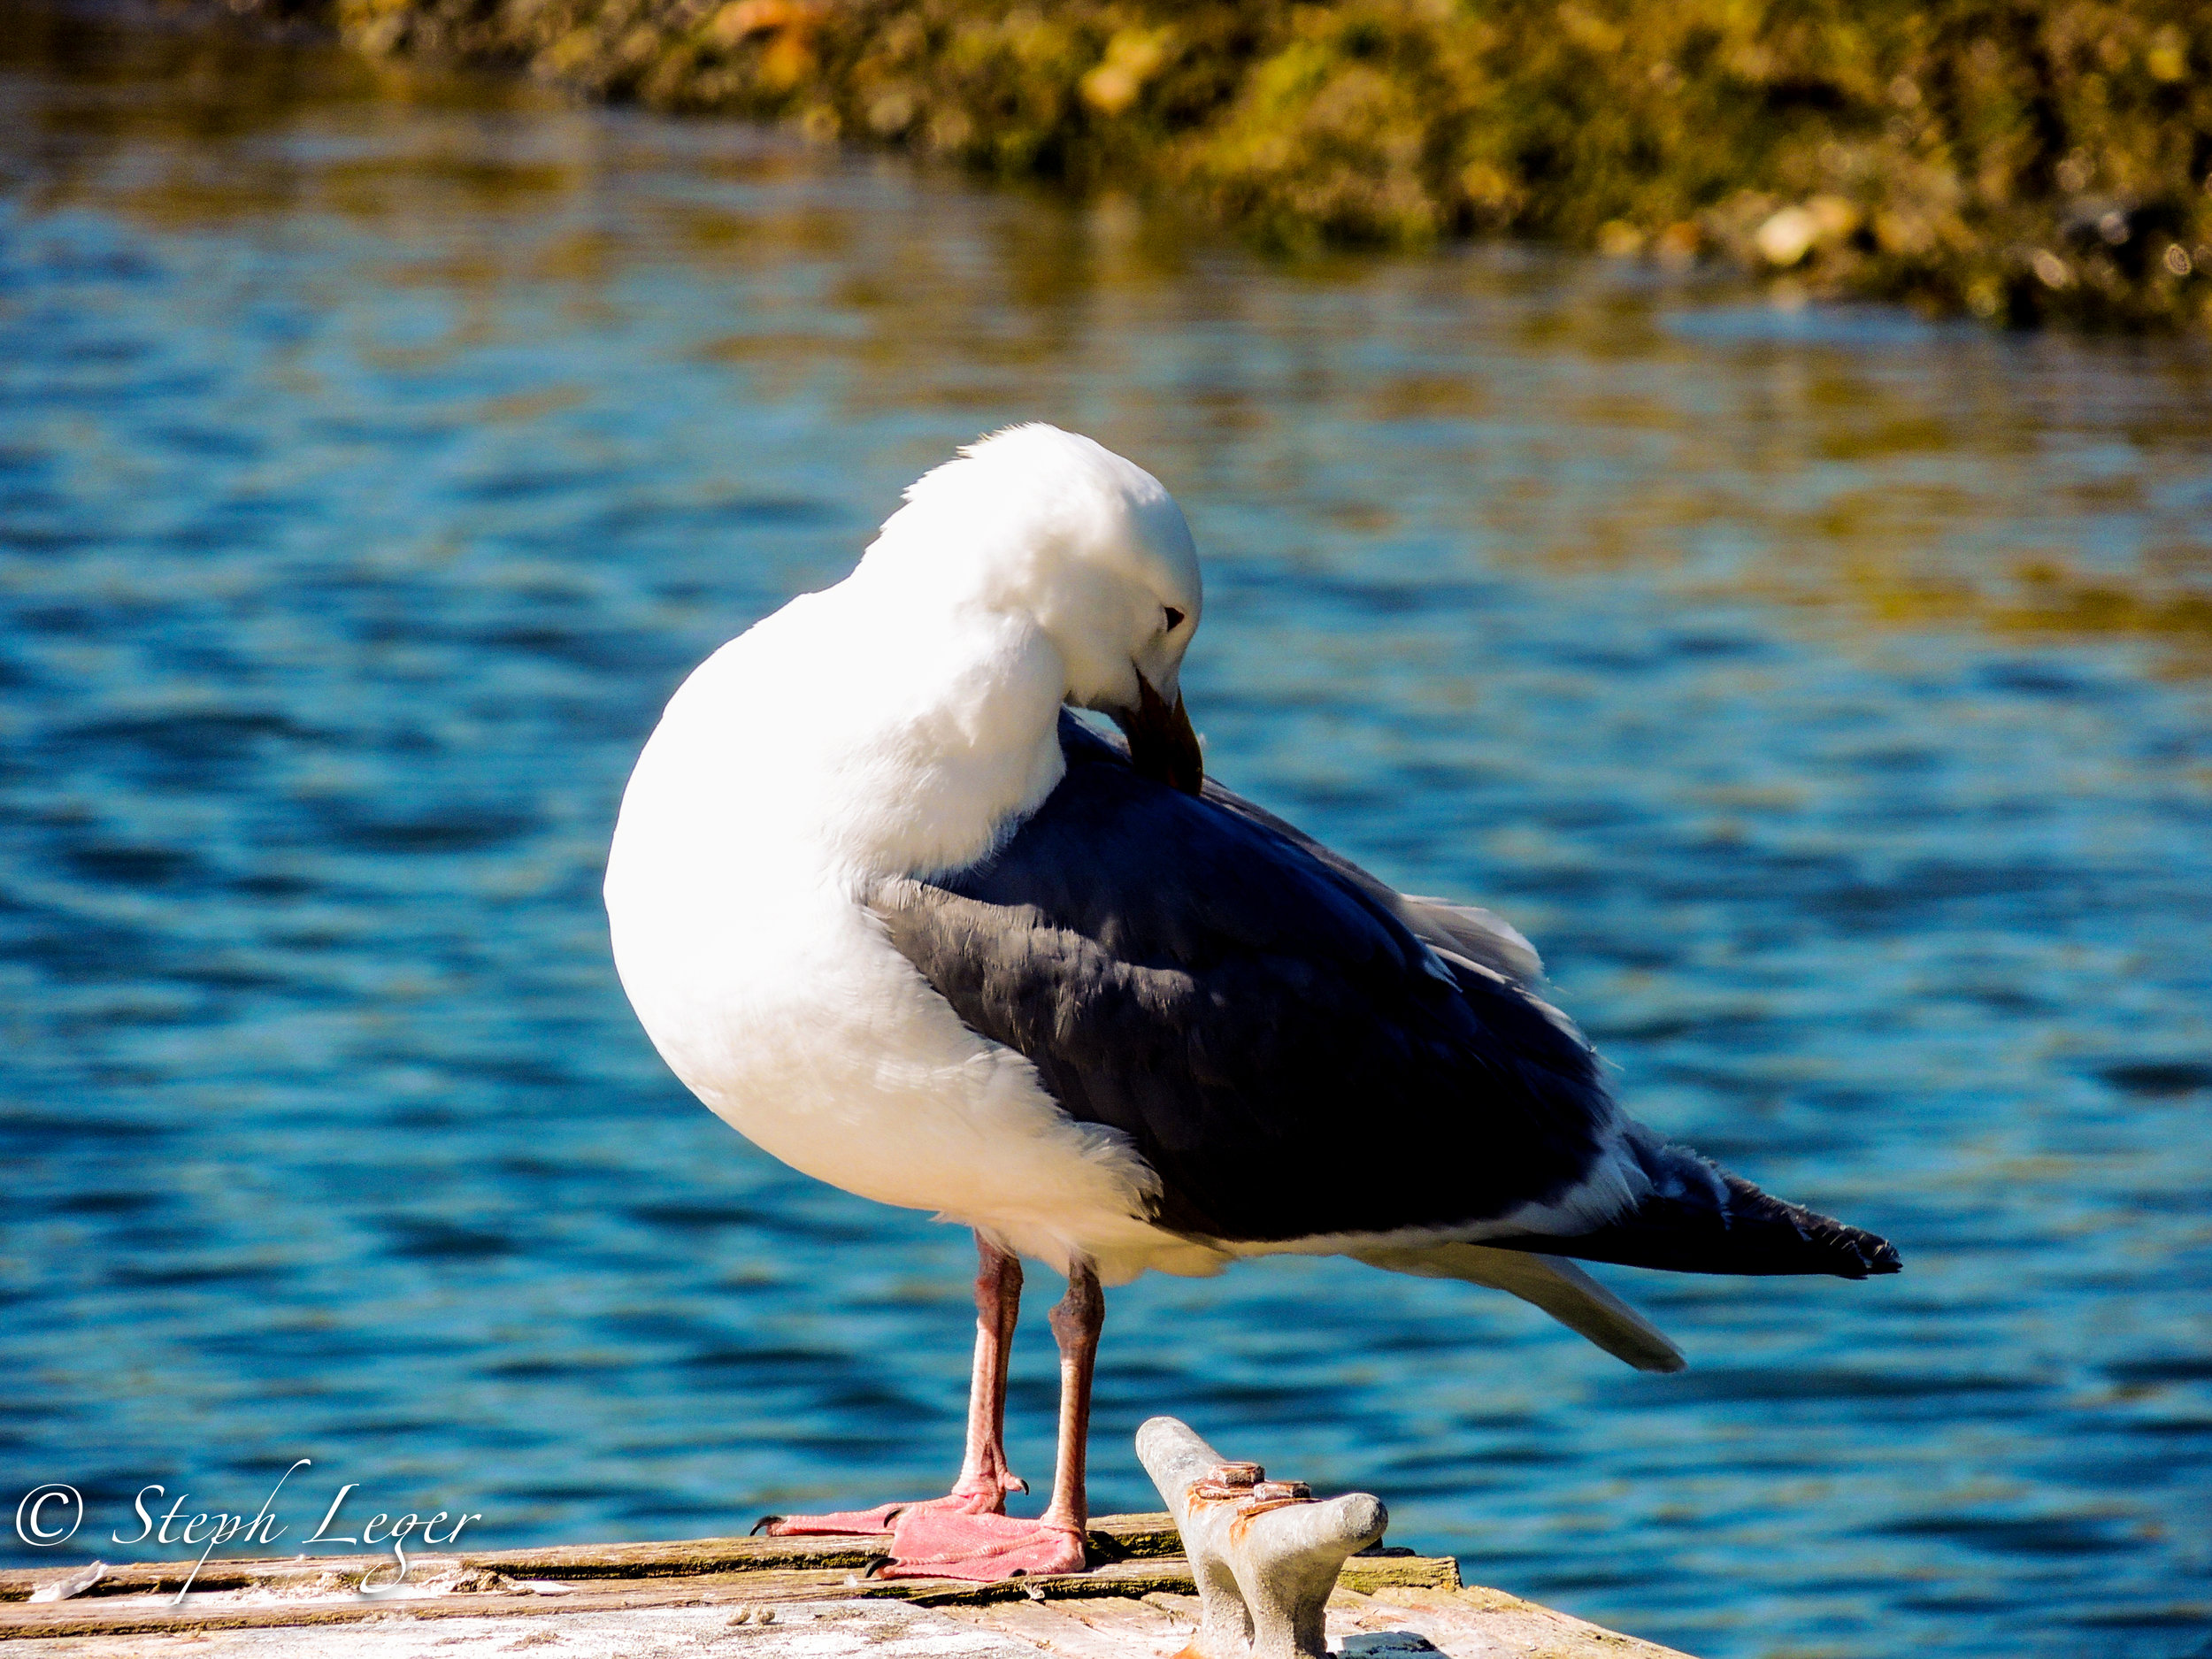 Glaucous-winged Gull (Larus glaucescens) - Protection Island, WA